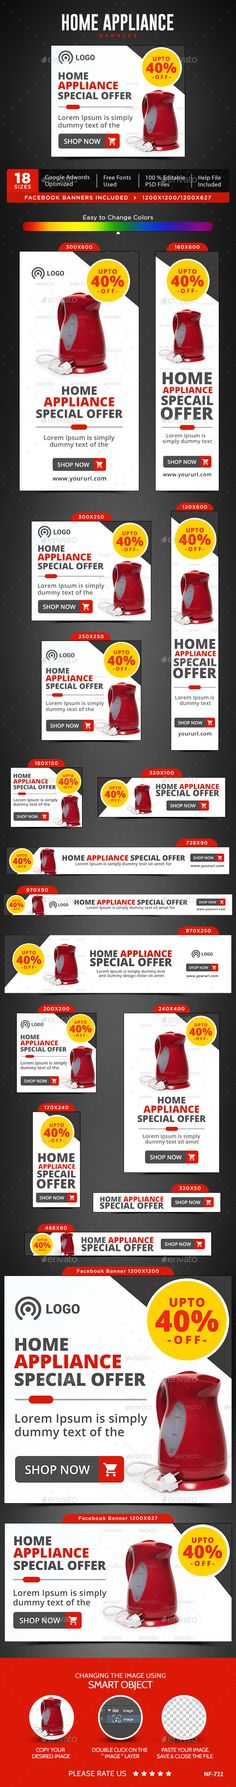 Home Appliances Web Banners Template PSD #design #ads Download: http://graphicriver.net/item/home-appliances-banners/13274597?ref=ksioks